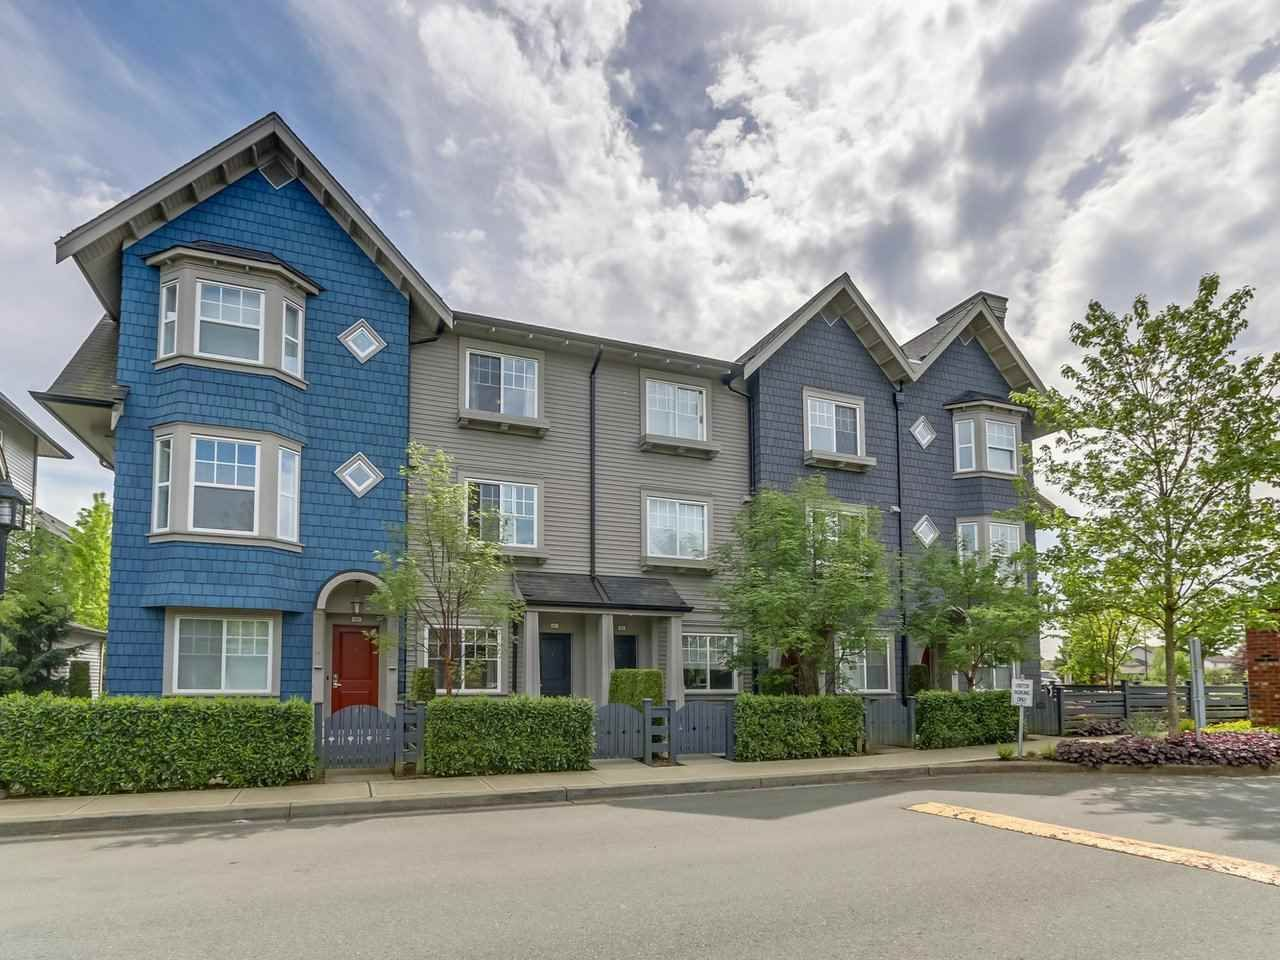 Main Photo: 67 6450 187 Street in Surrey: Cloverdale BC Townhouse for sale (Cloverdale)  : MLS®# R2267168